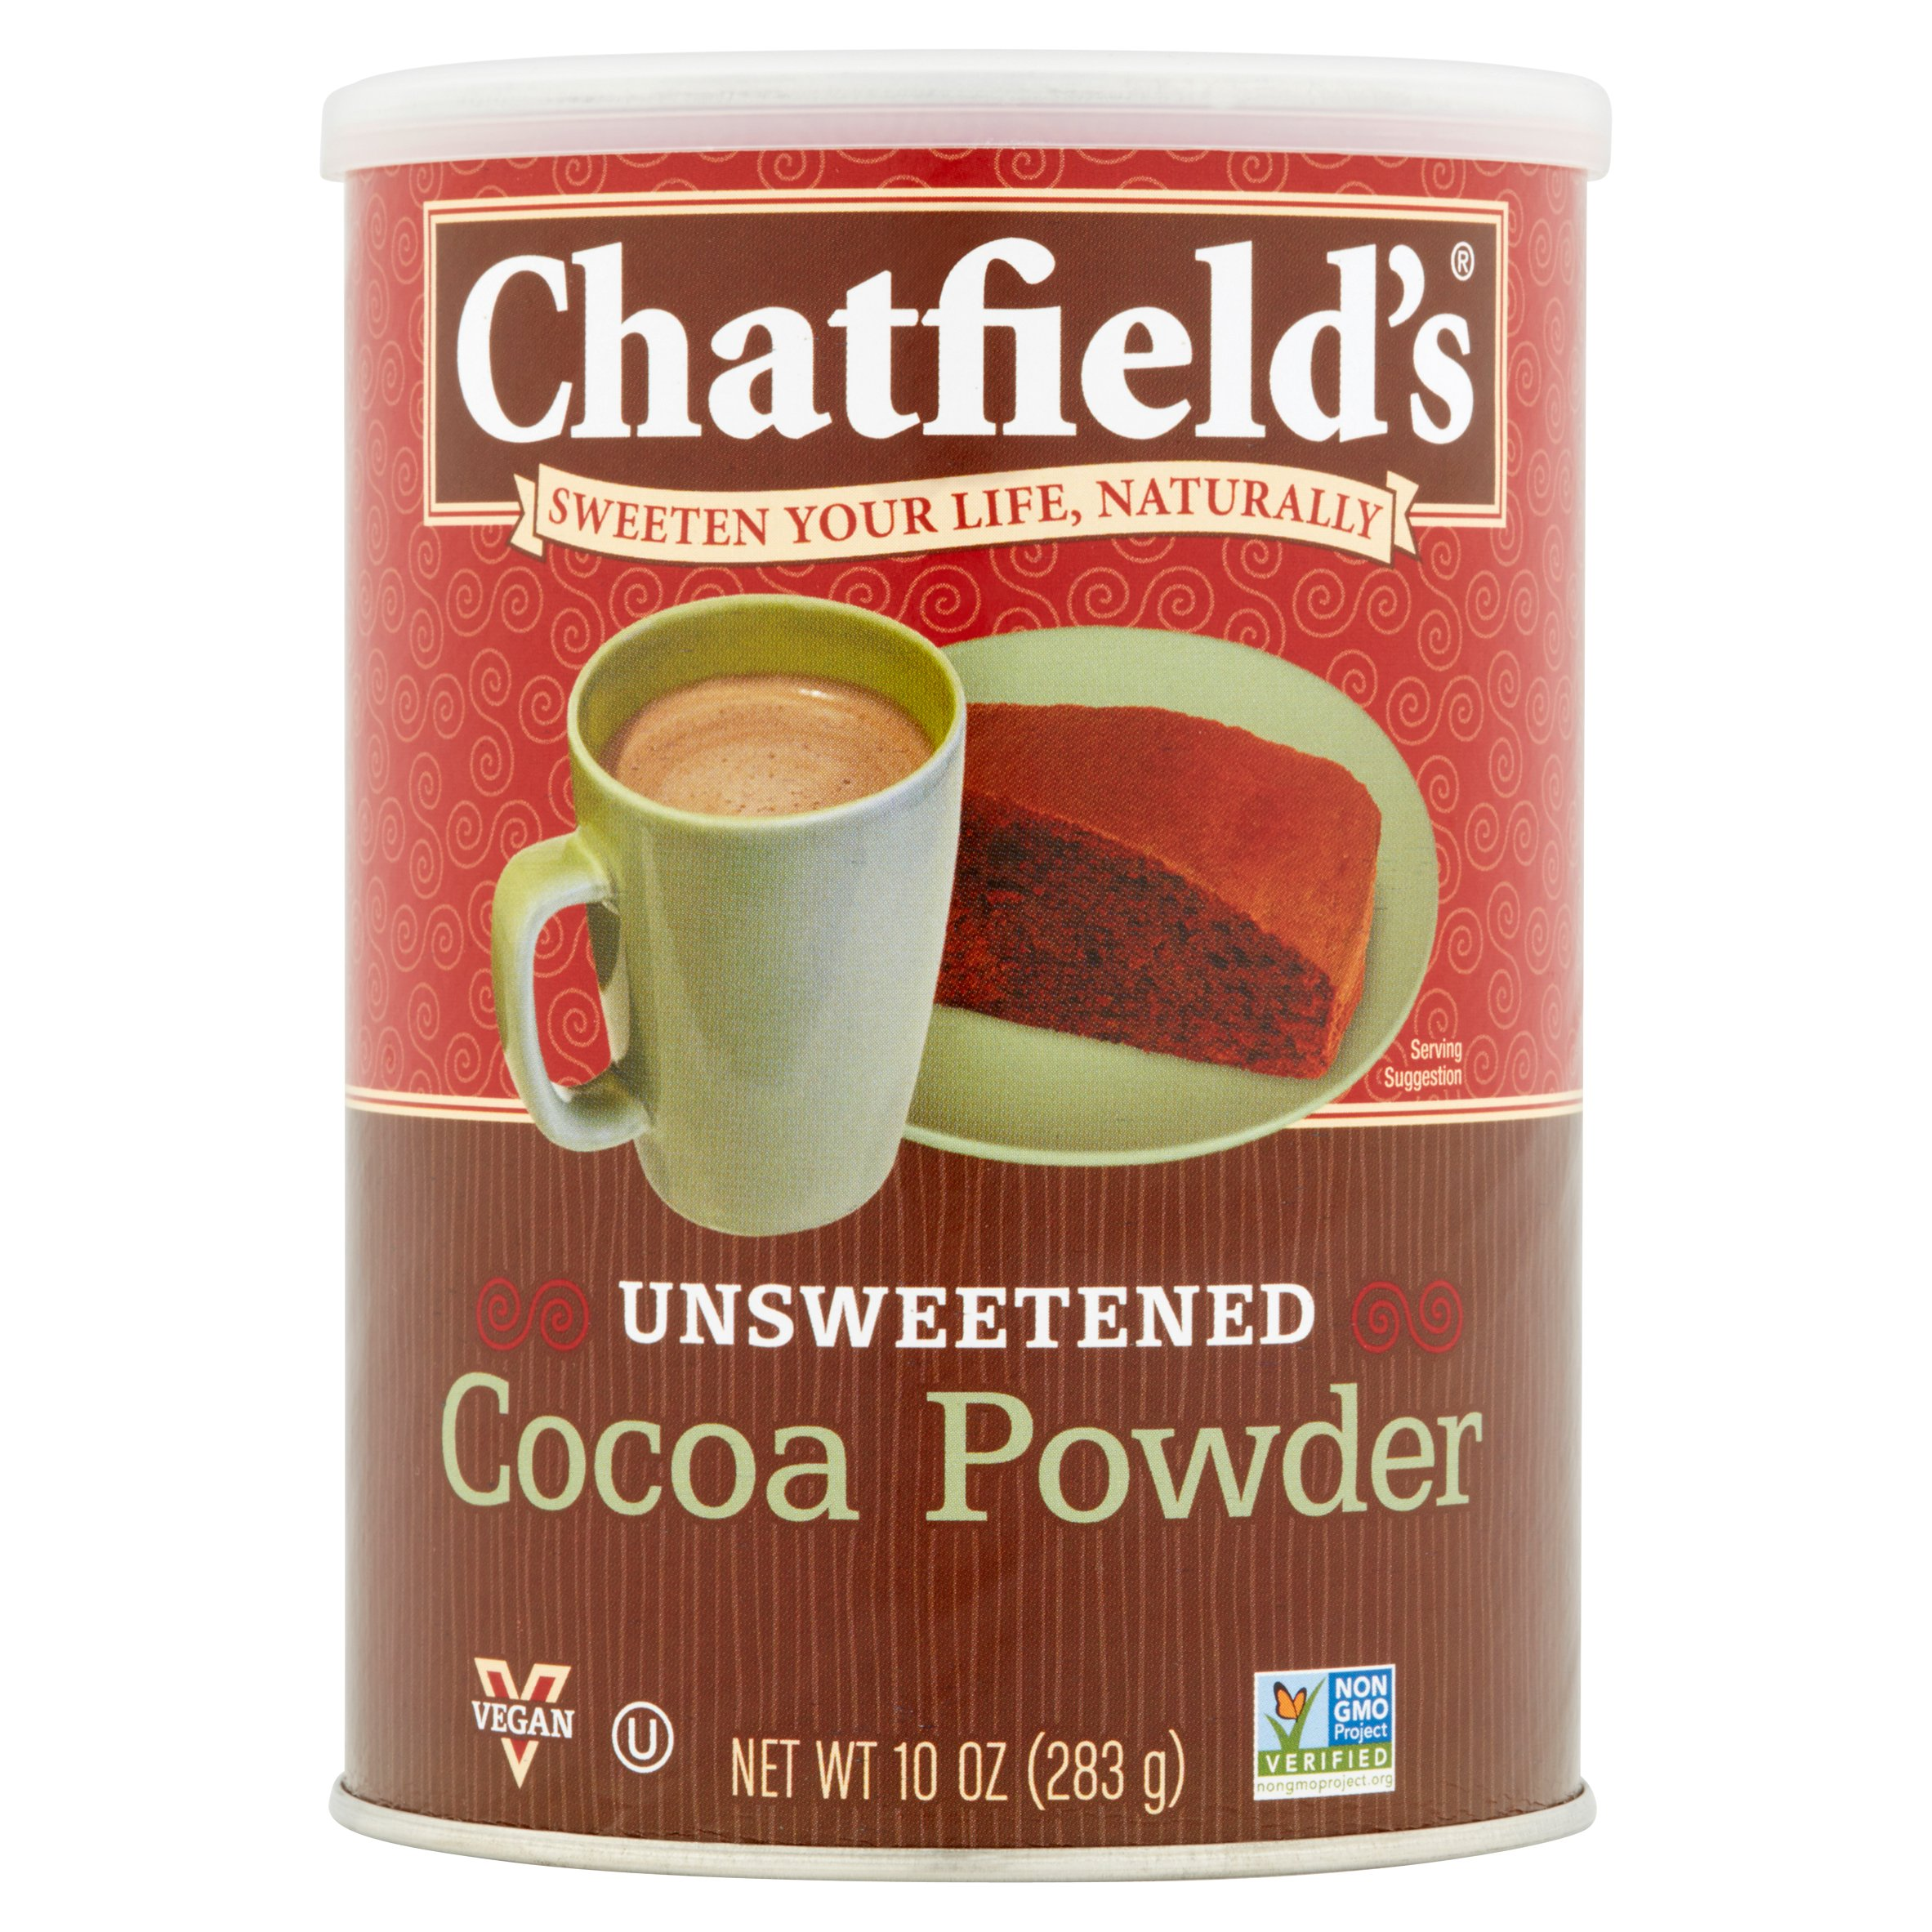 Chatfield's Unsweetened Cocoa Powder, 10 oz, 6 pack by Panos® Brands